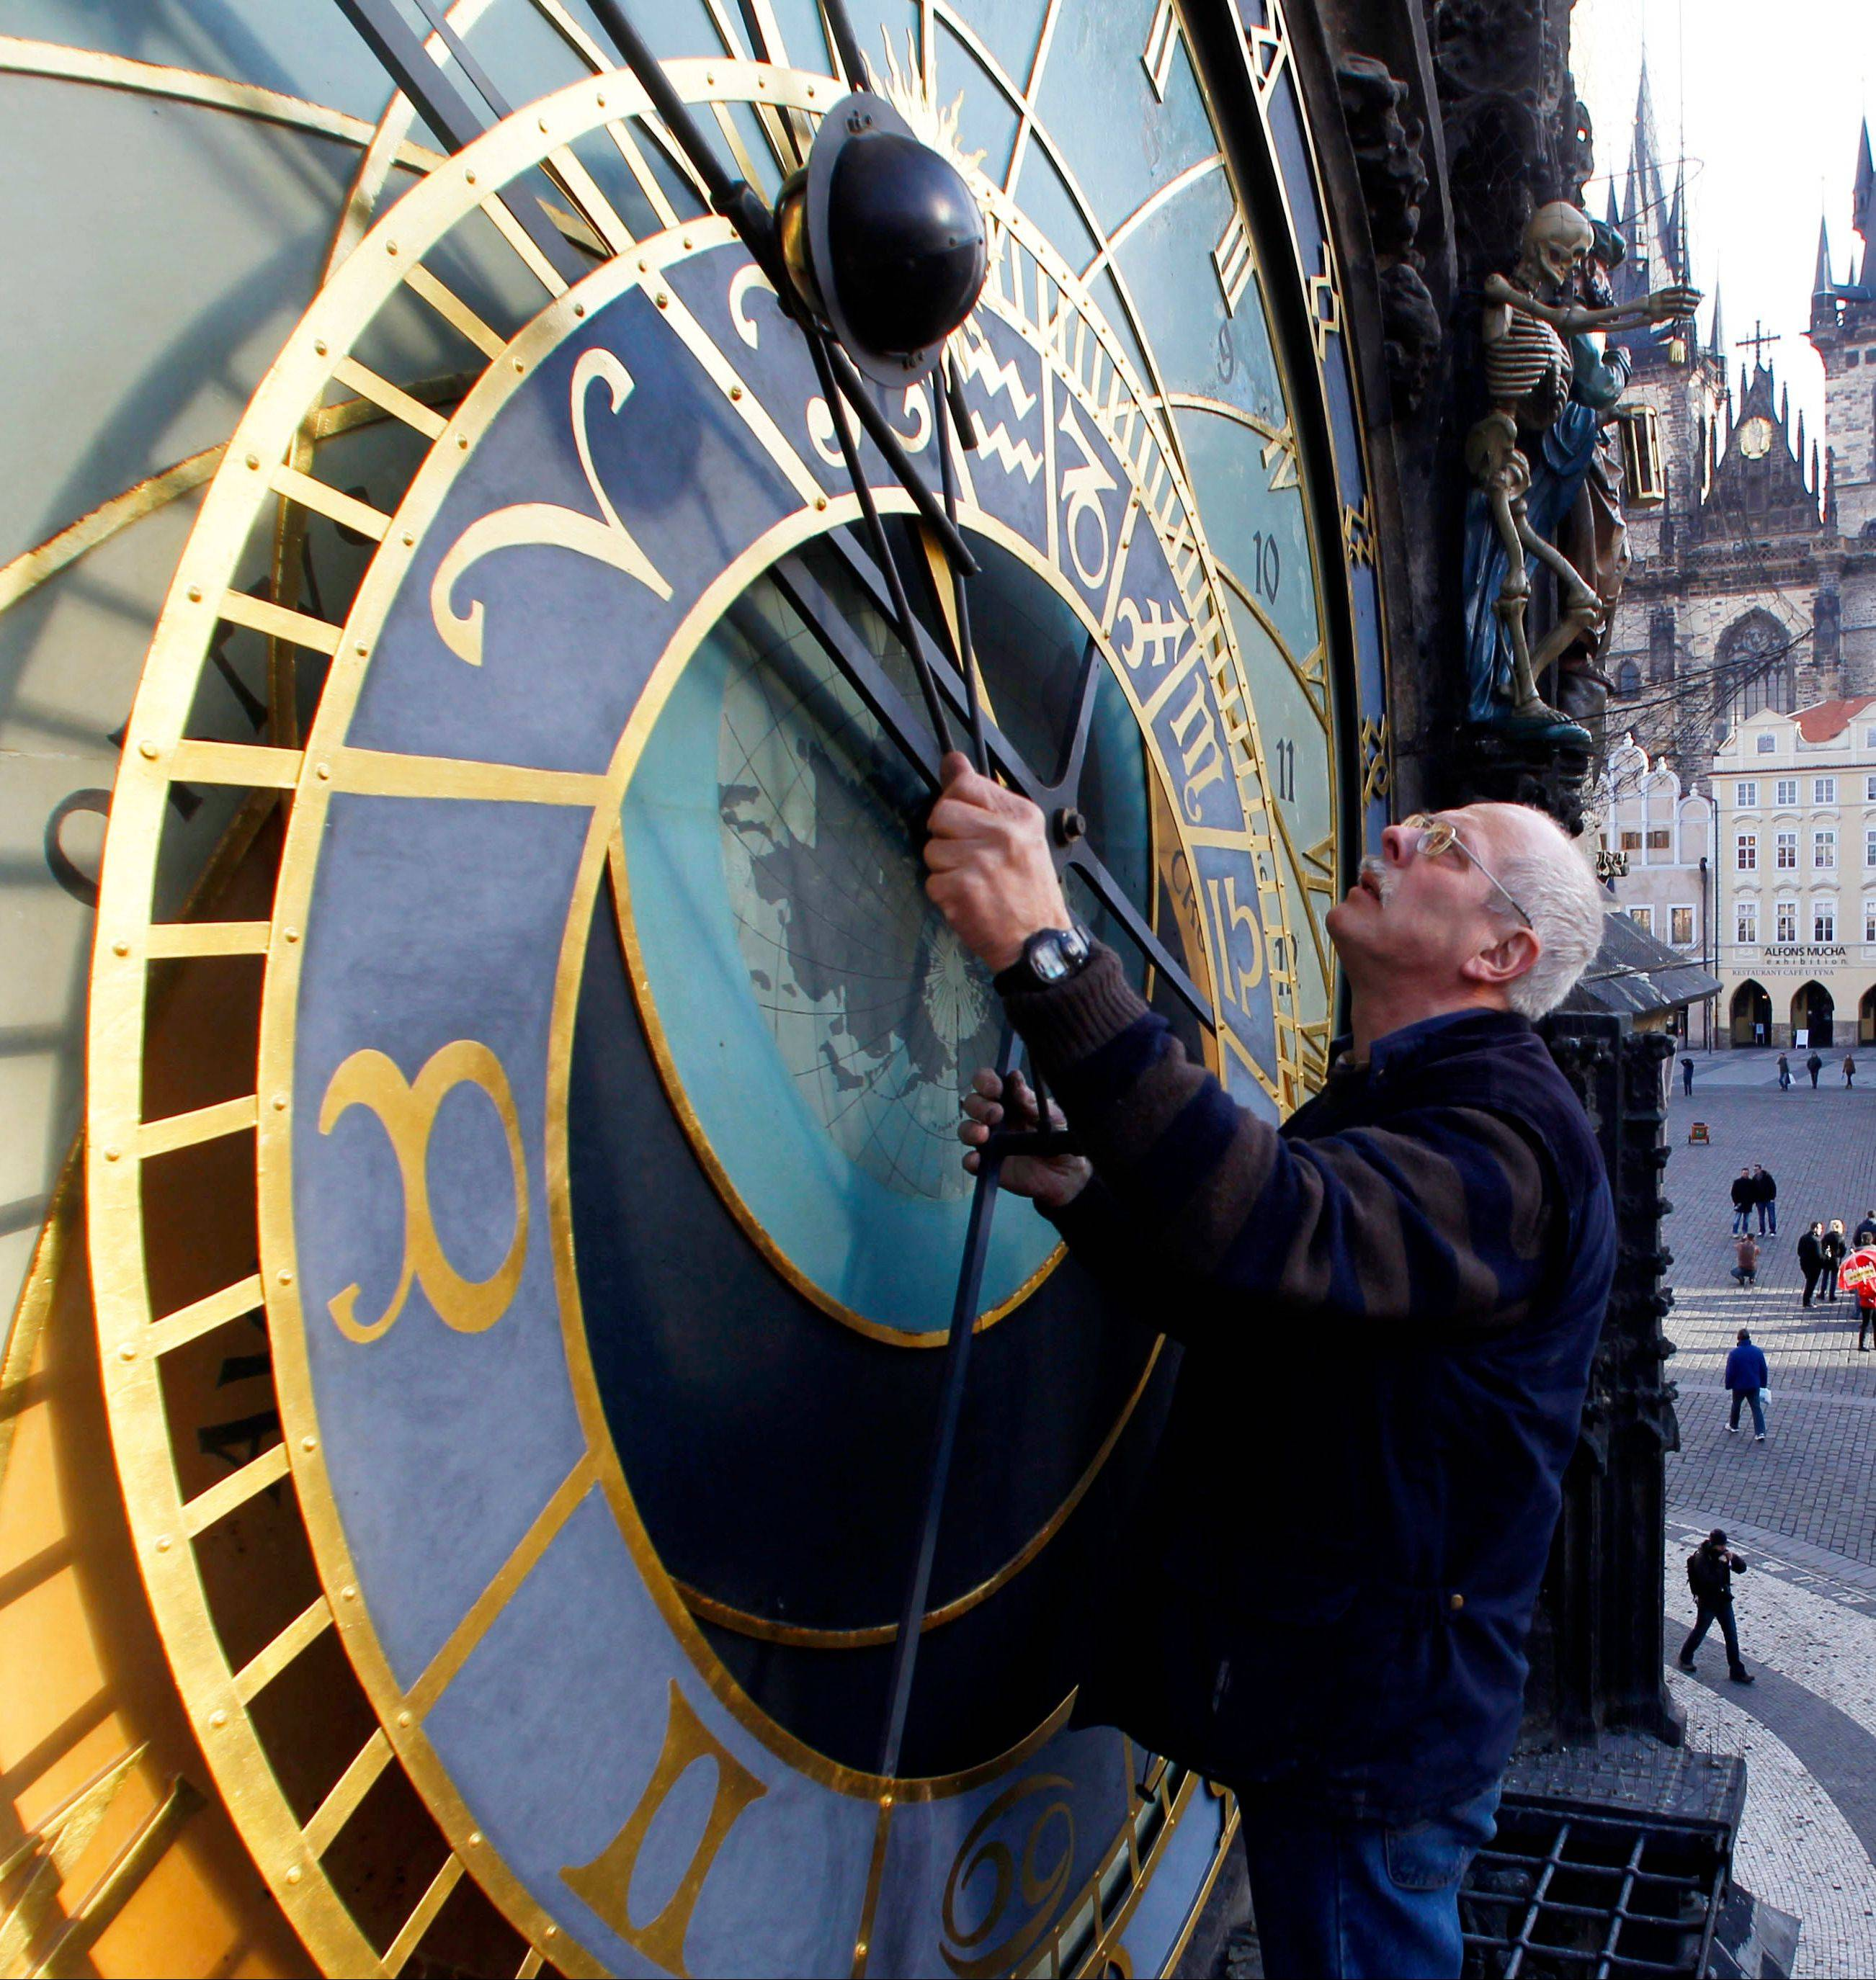 Petr Skala works on the Astronomical clock at the Old Town Square in Prague. The clock was first installed in 1410, making it the third-oldest astronomical clock in the world.